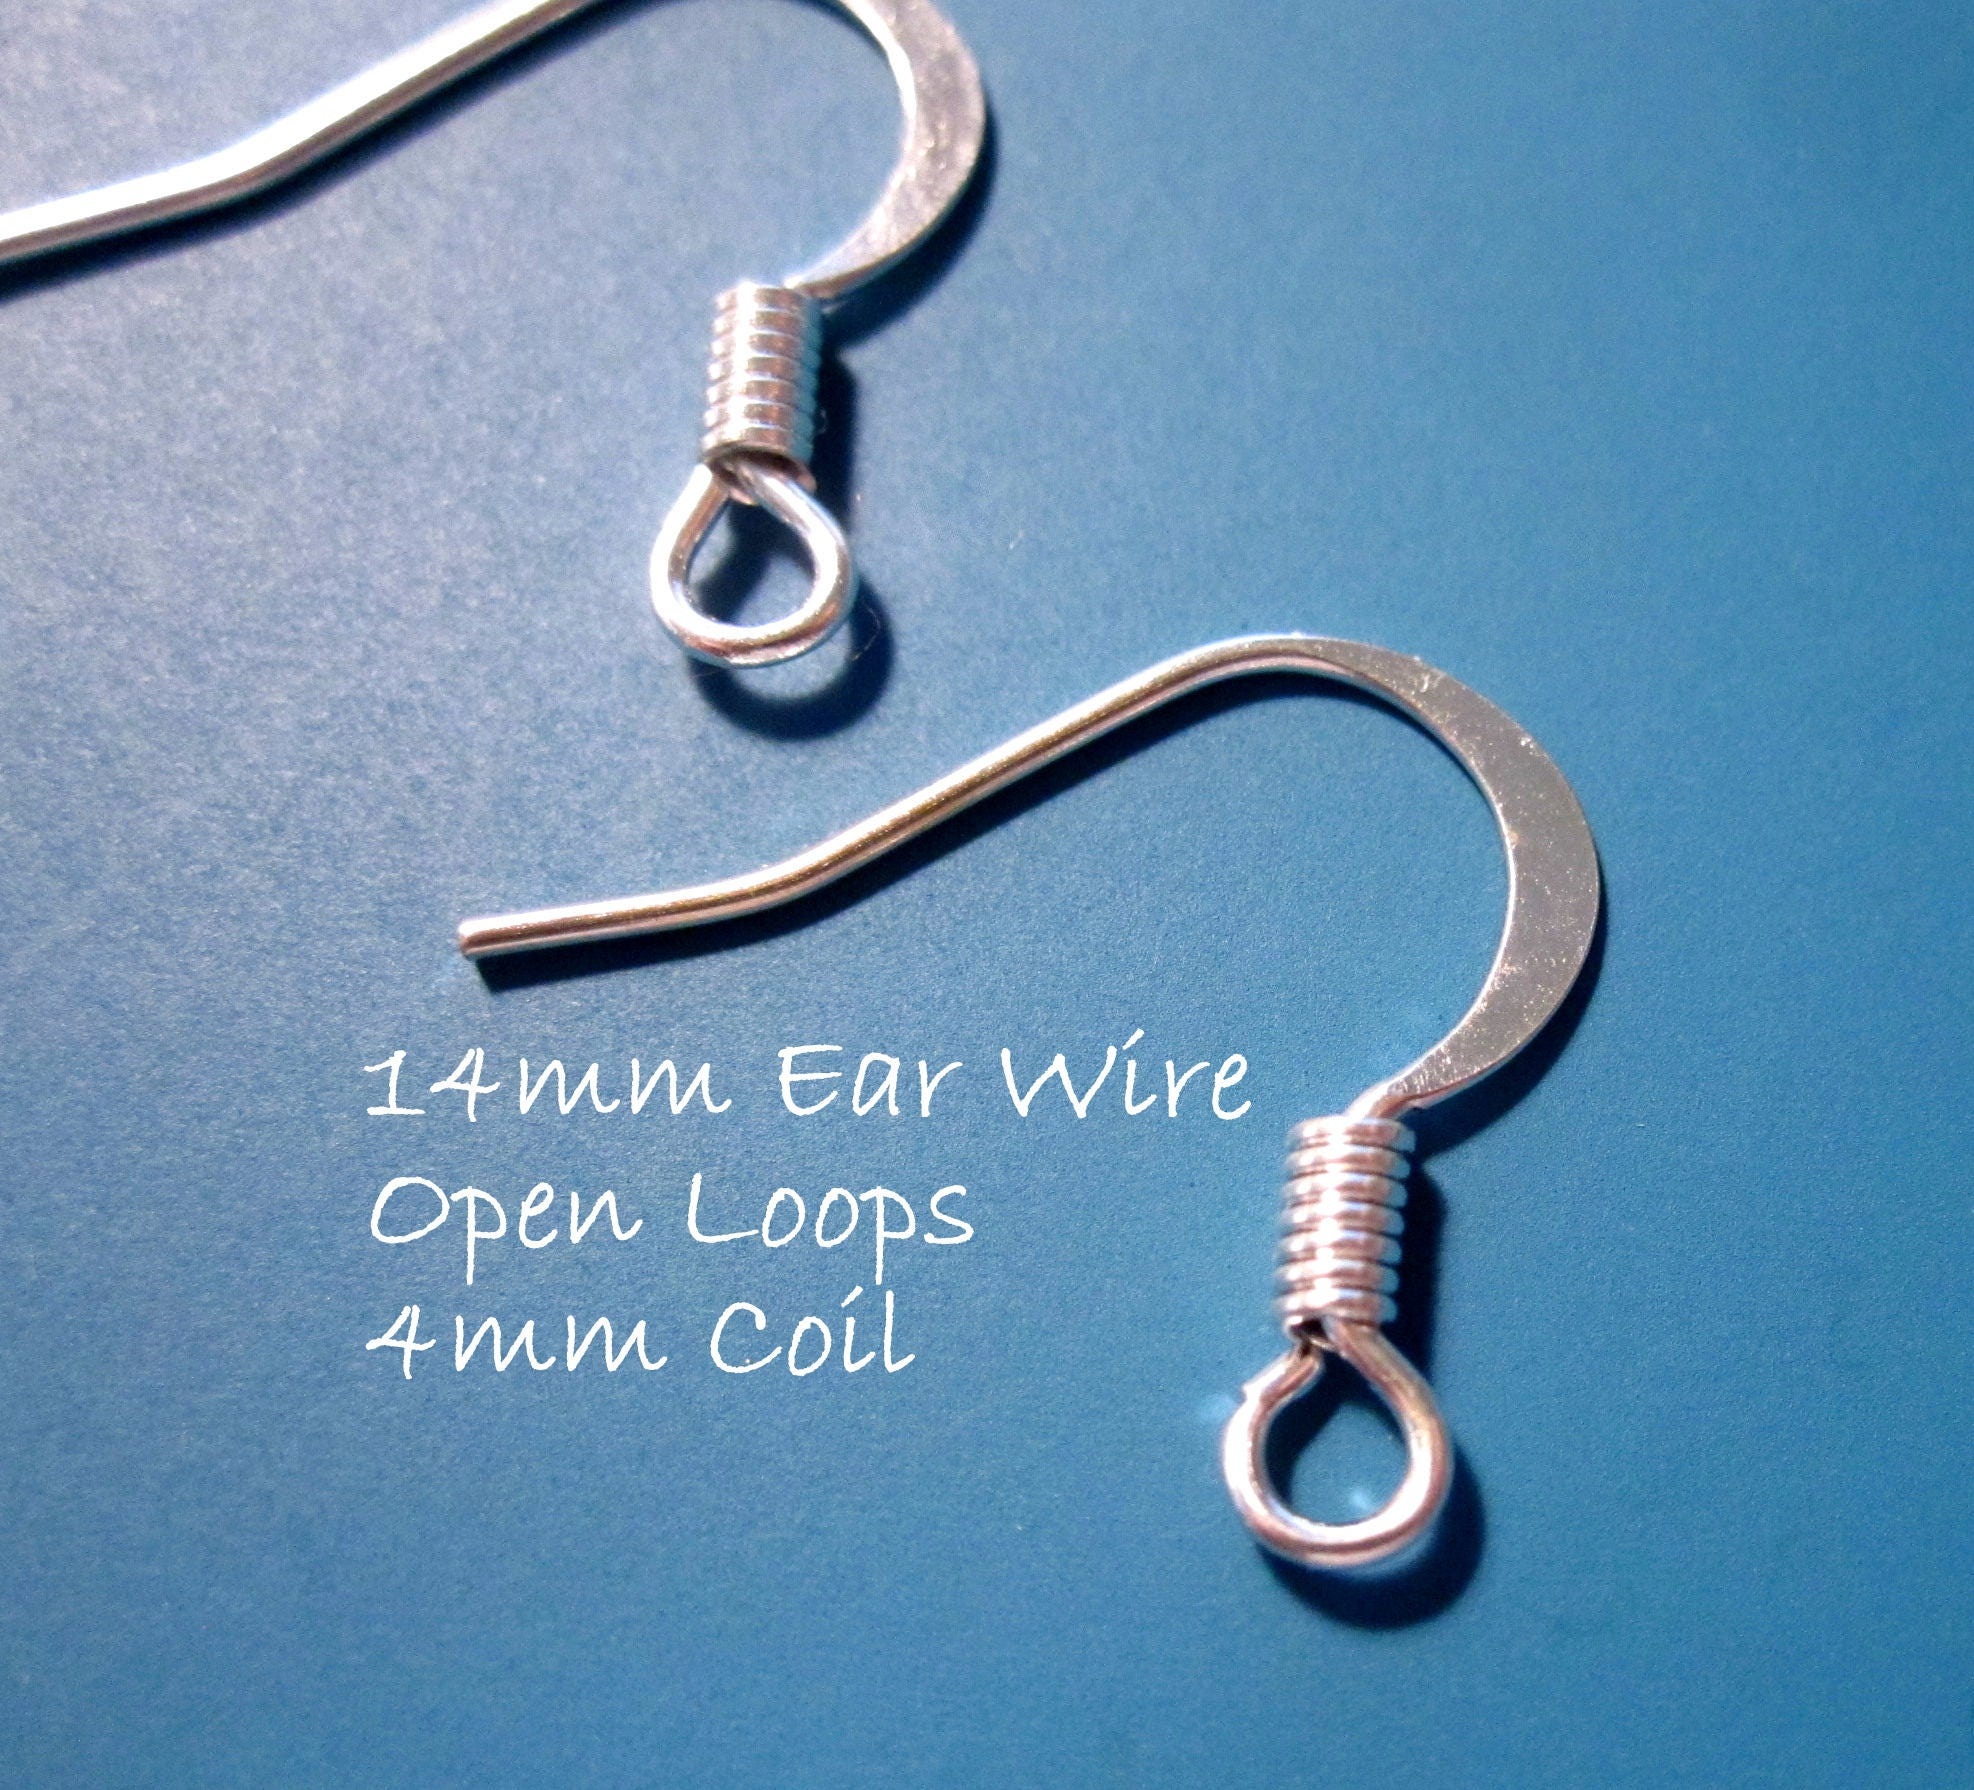 50% Off Earwires 30pcs Ear wires Silver-plated 14mm Flat Fishhook ...